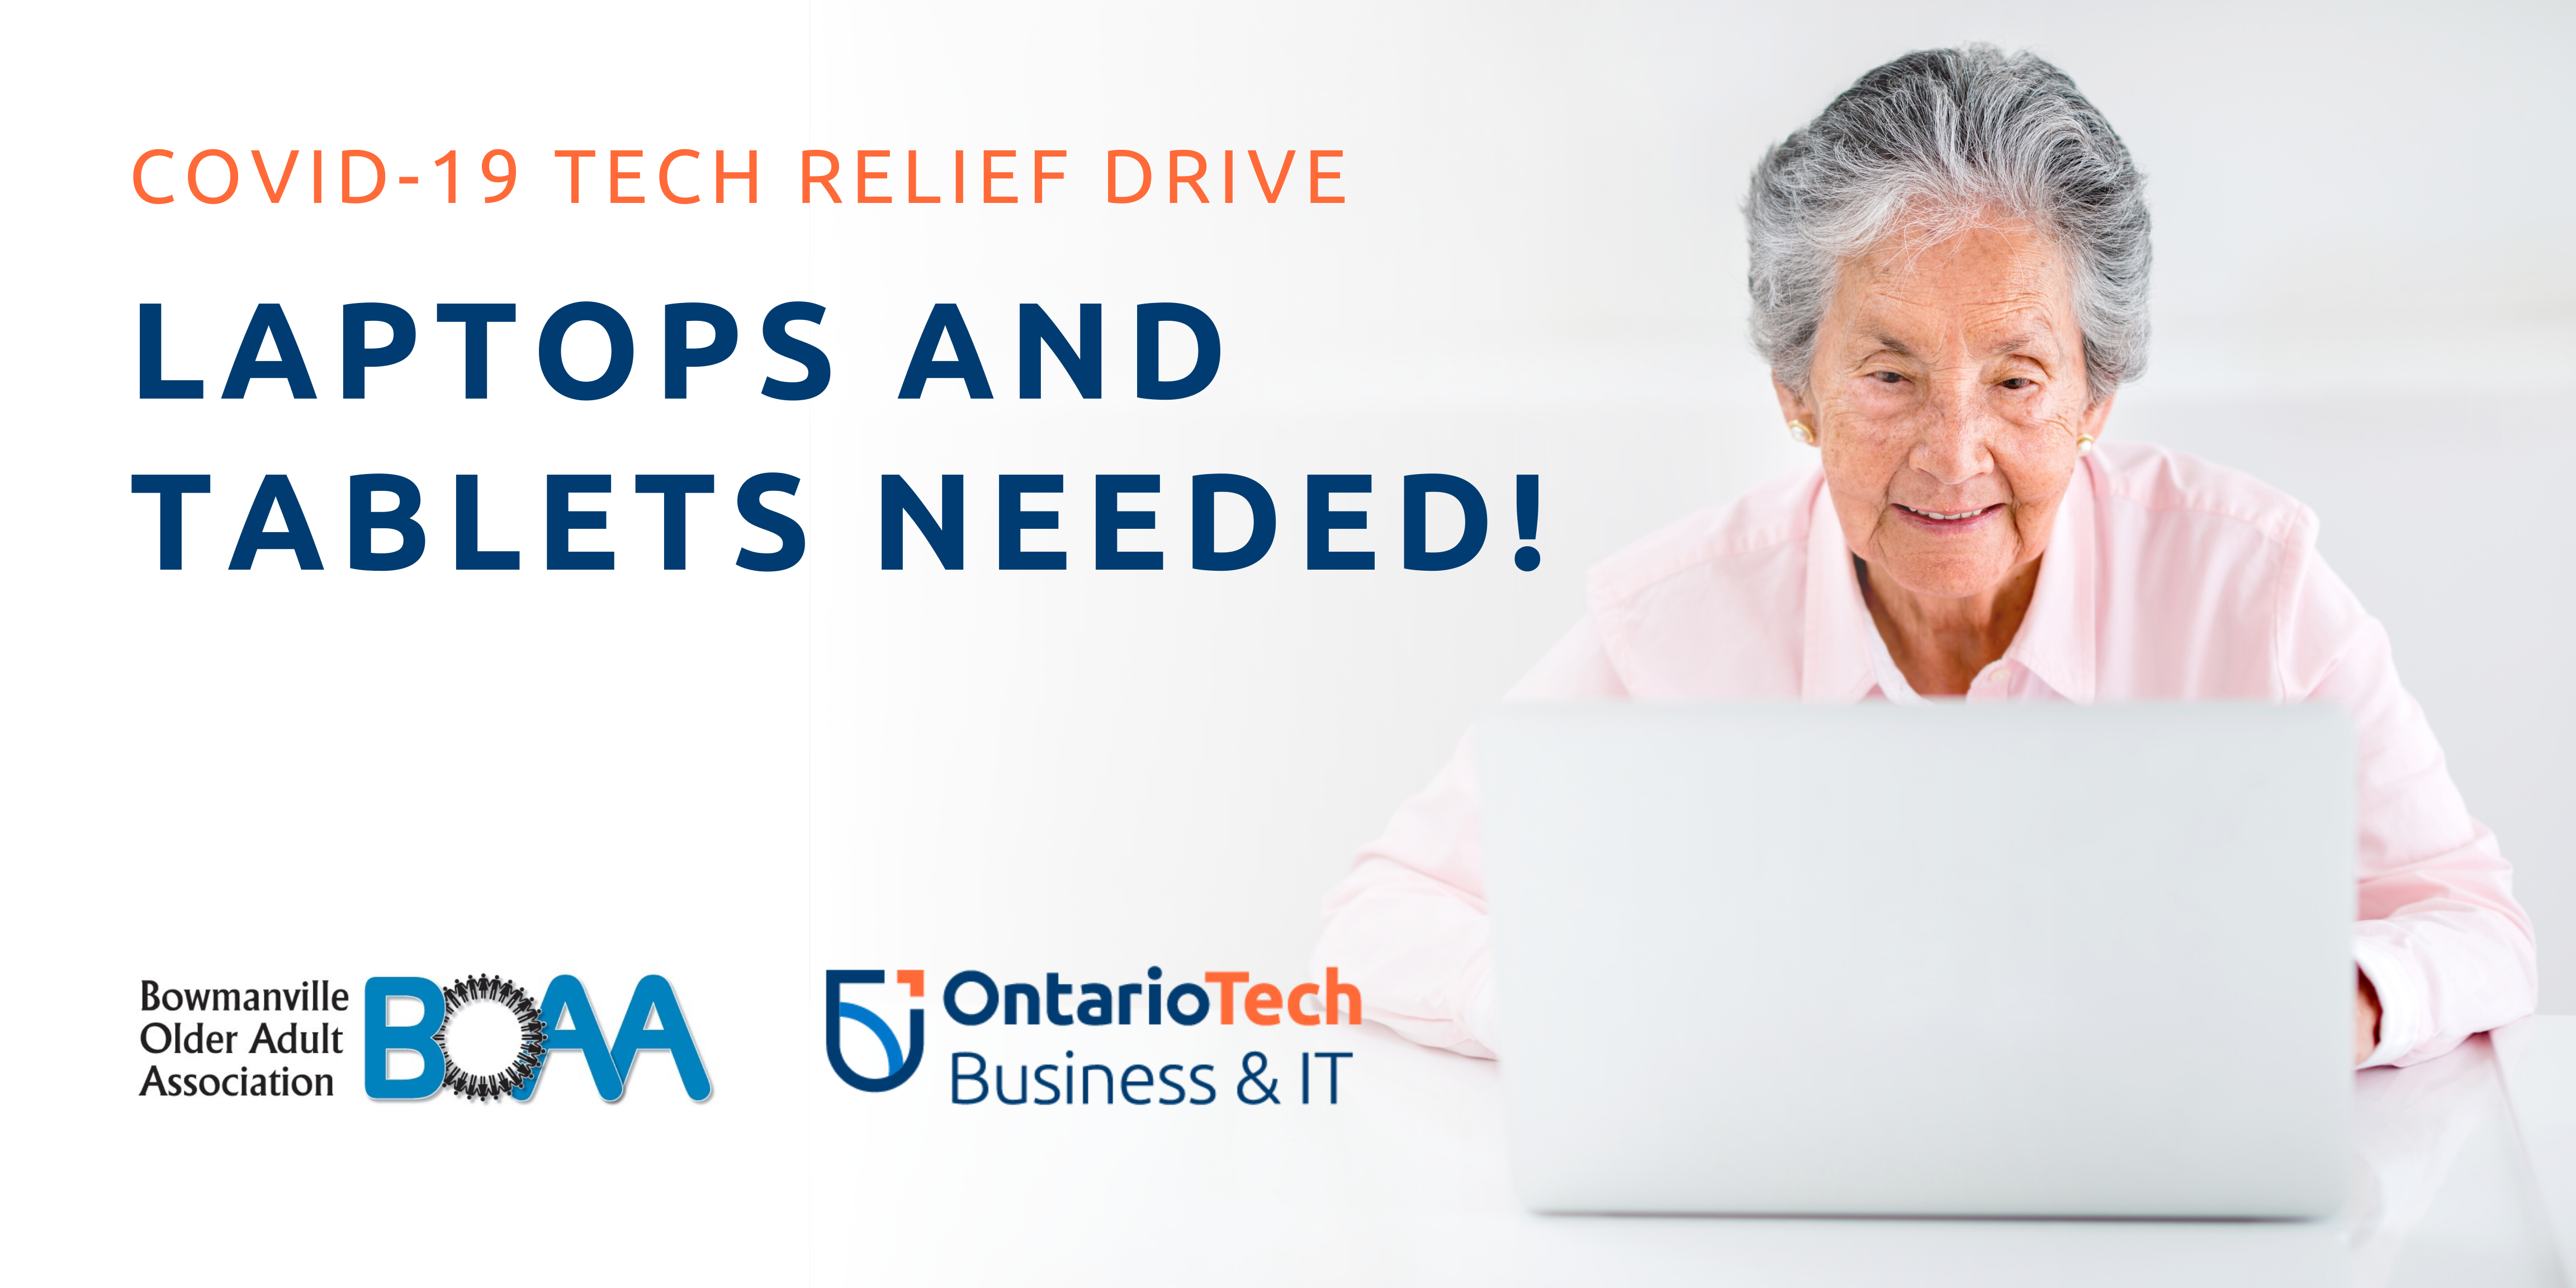 Covid 19 Relief Tech Drive by the Faculty of Business and IT and the Bowmanville Older Adult Association